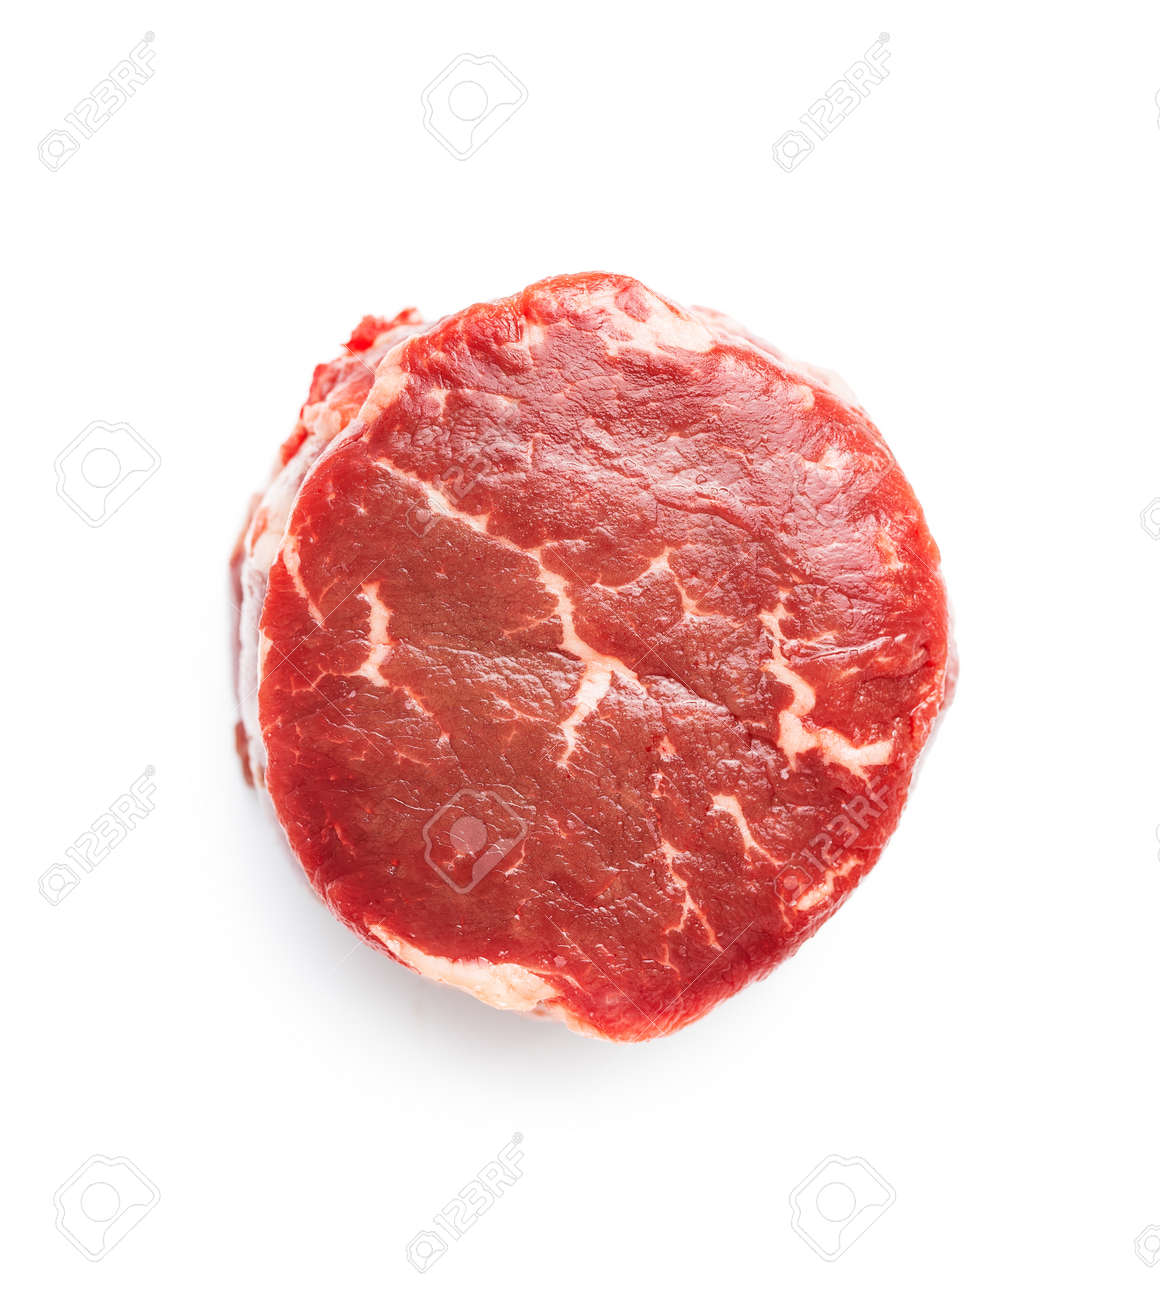 The raw beef meat steak isolated on white background. - 168434827